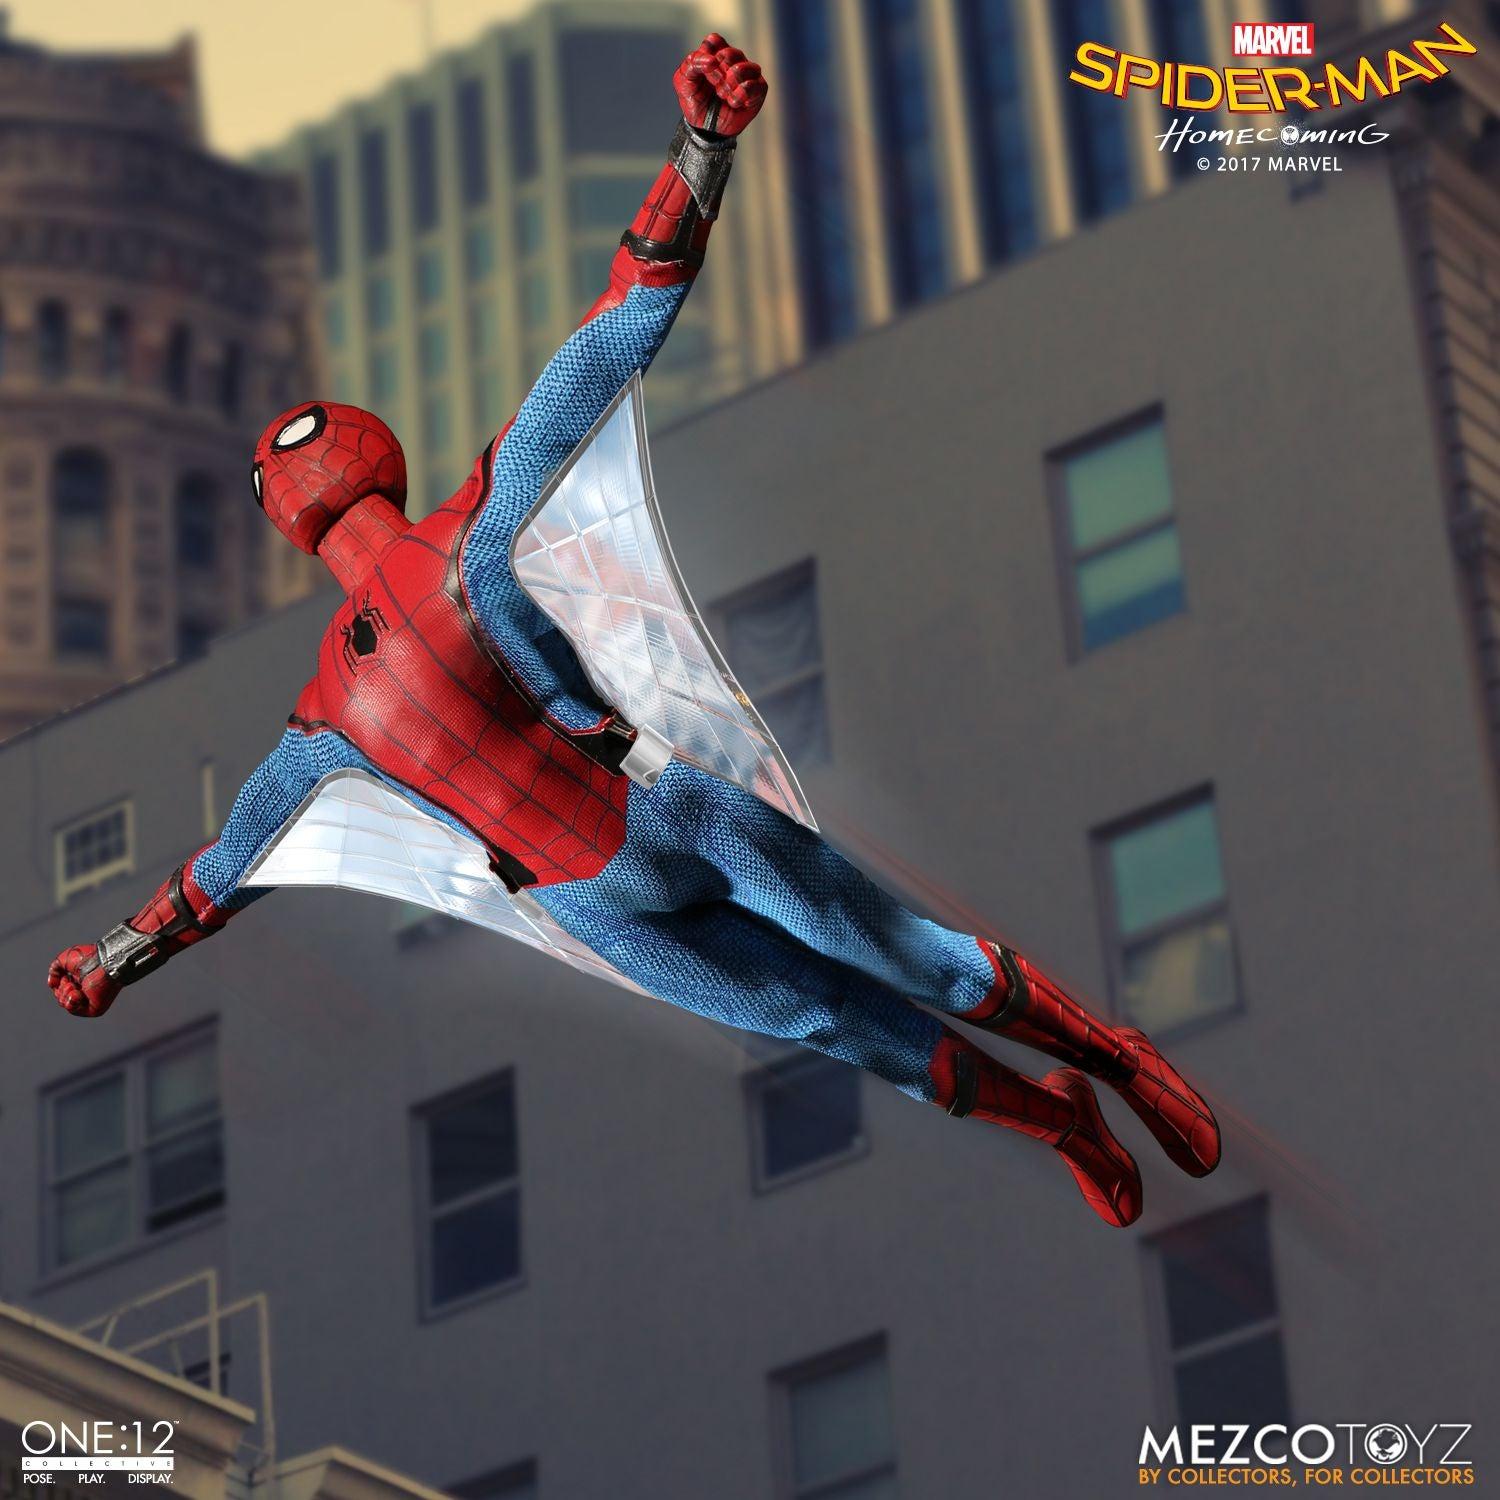 Mezco - One:12 Collective - Spider-Man: Homecoming